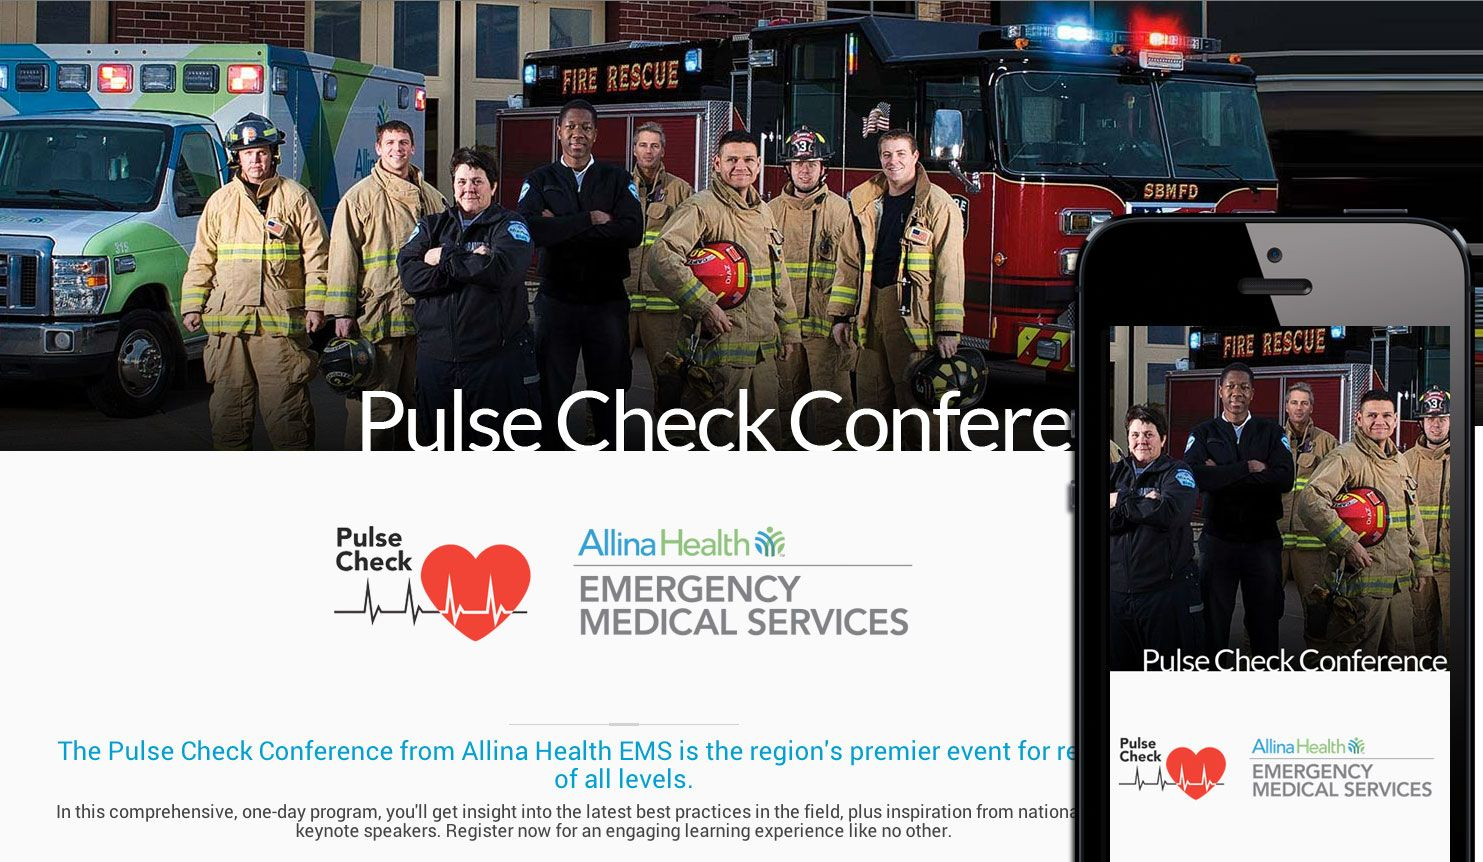 The Pulse Check Conference From Allina Health Ems Is The Region S Premier Event For Responders Of Al Emergency Medical Allina Health Emergency Medical Services